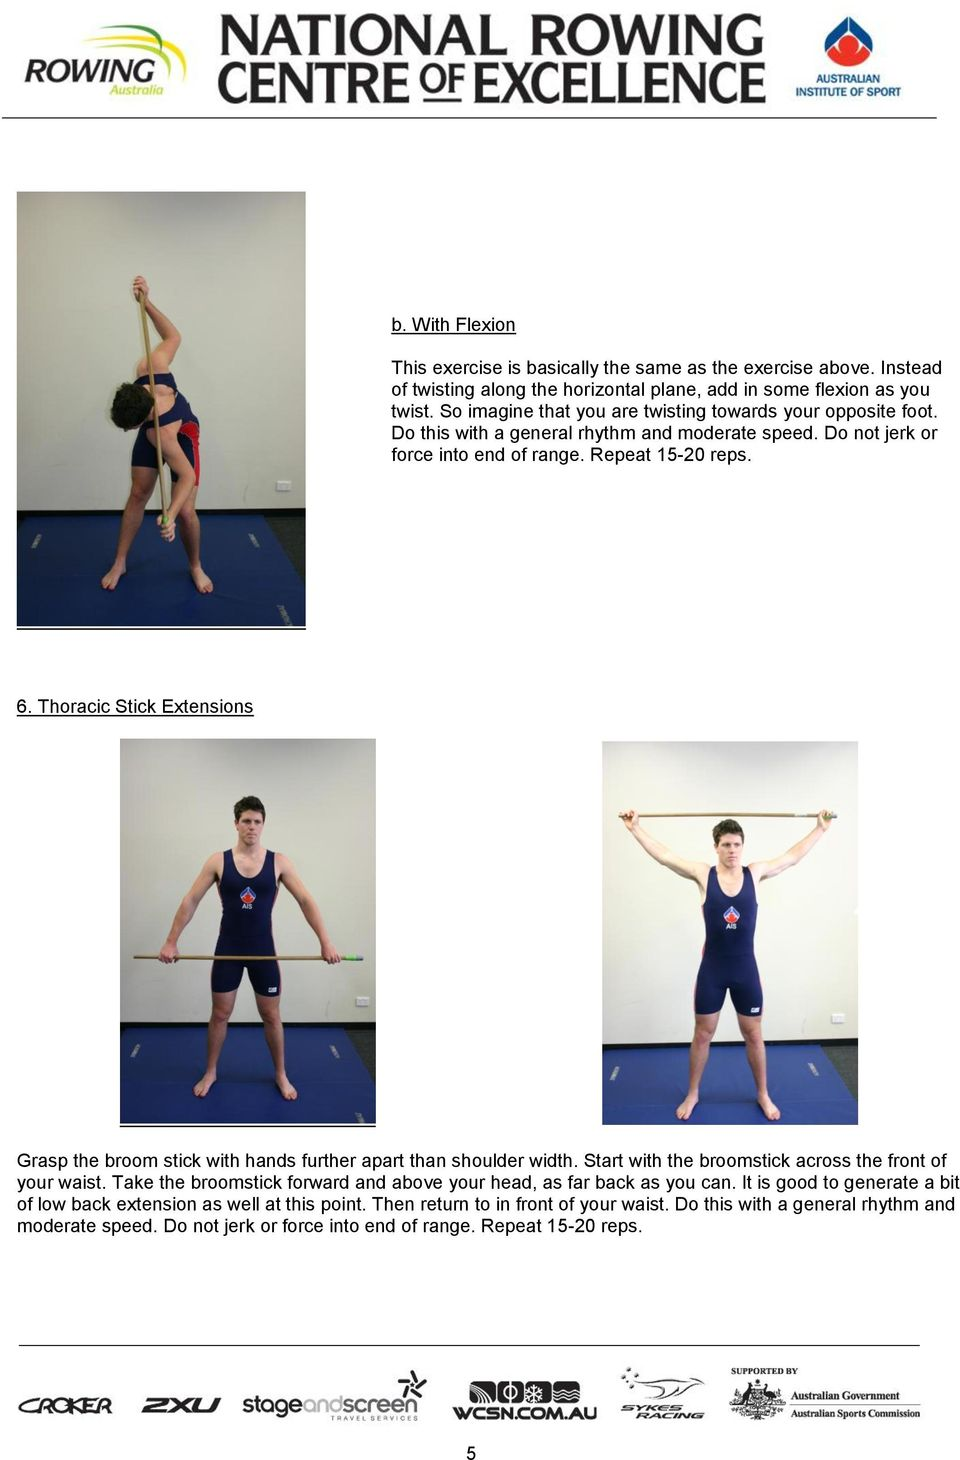 Thoracic Stick Extensions Grasp the broom stick with hands further apart than shoulder width. Start with the broomstick across the front of your waist.